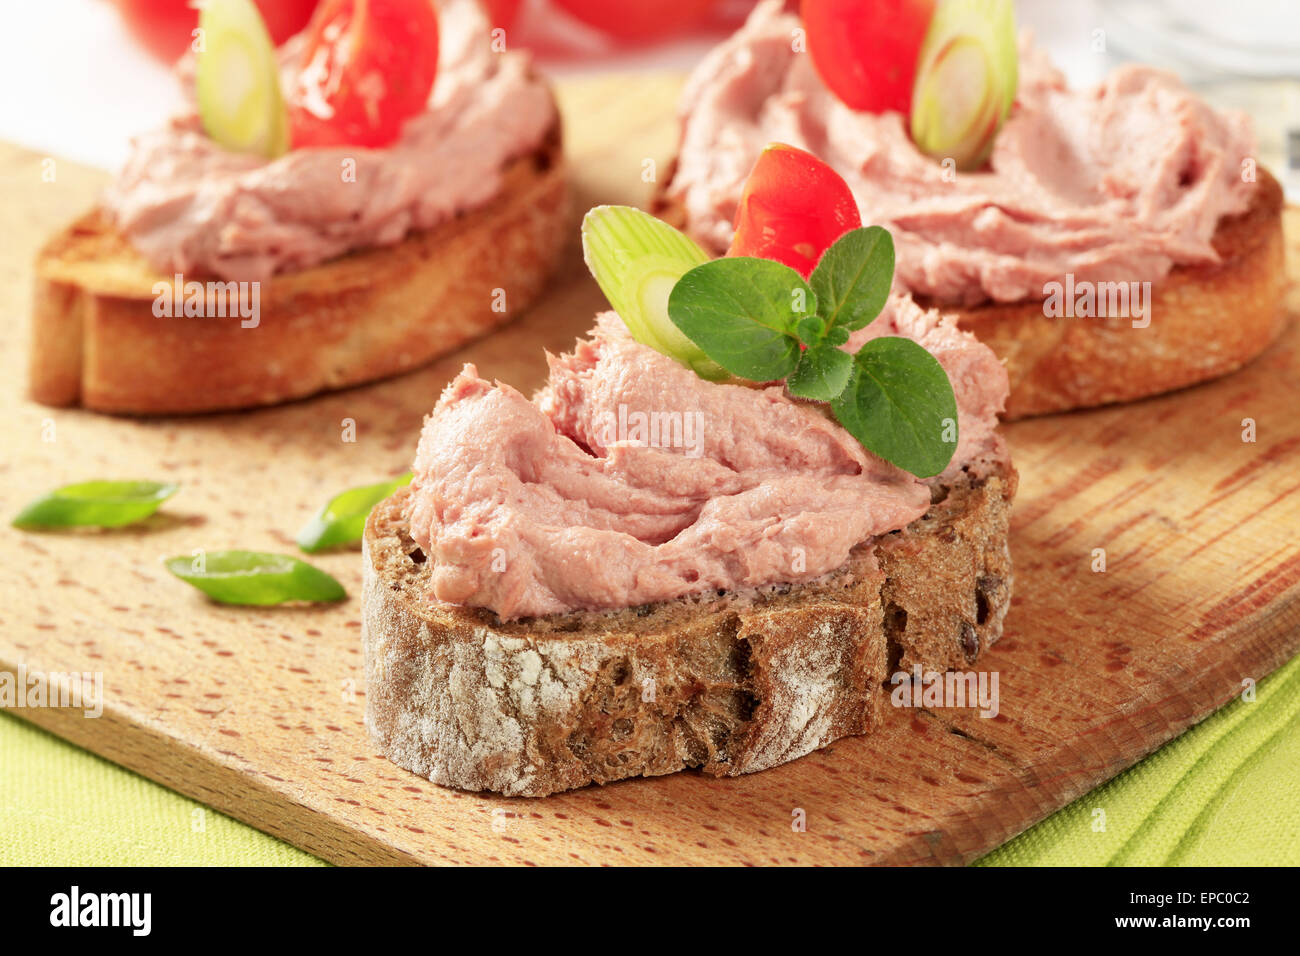 Slices of bread with smooth meat spread - Stock Image